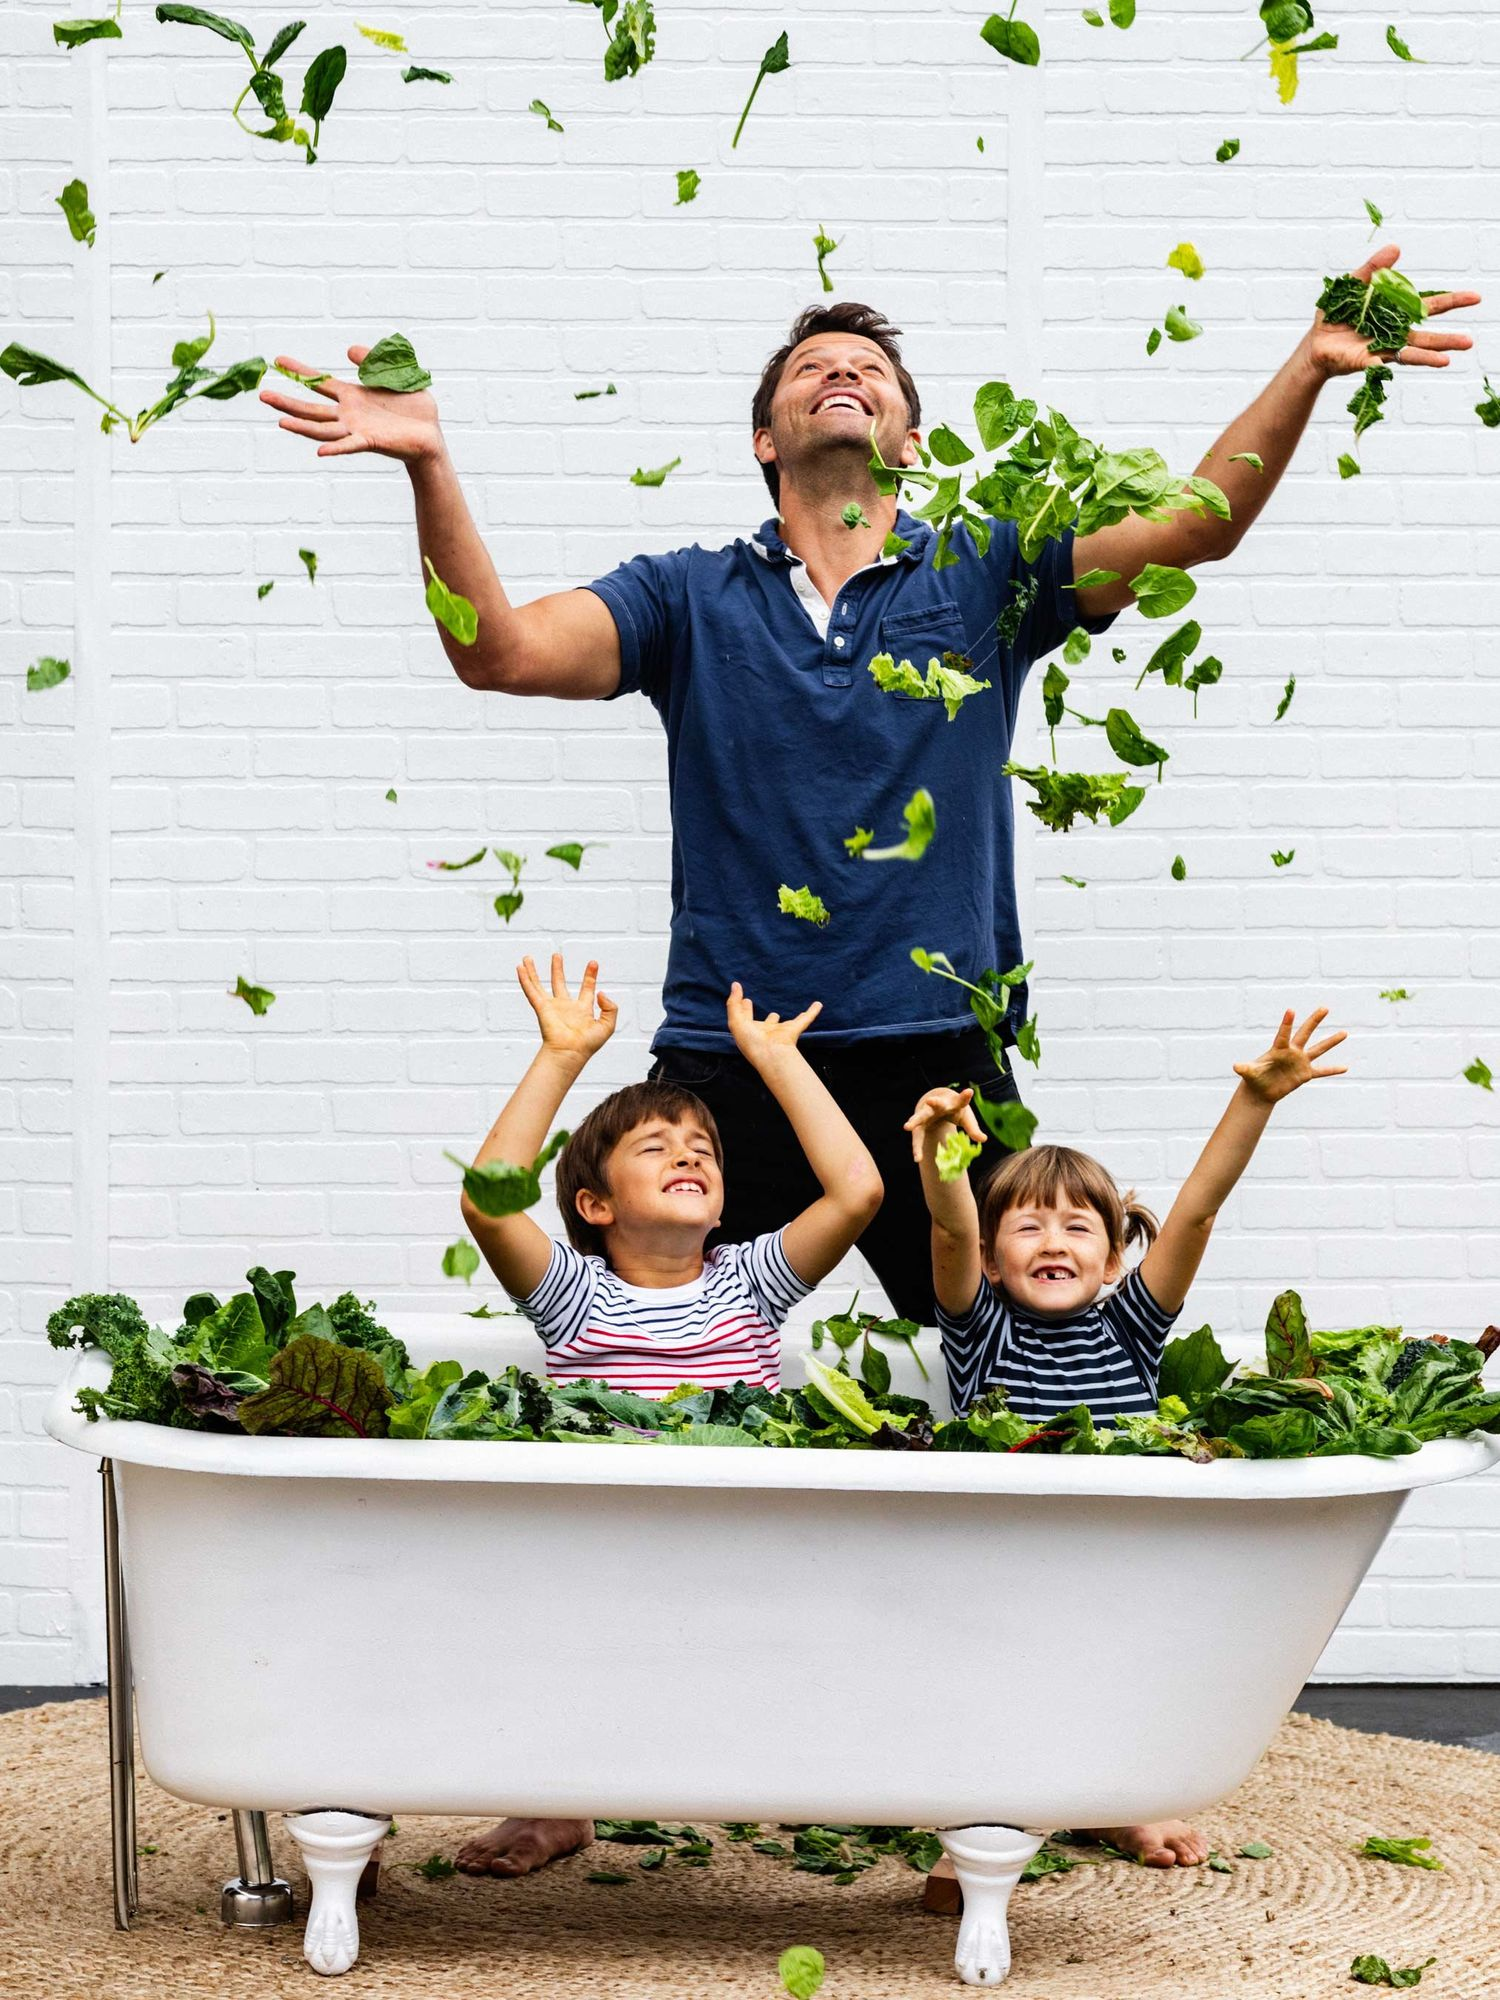 Misha Collins and kids tossing lettuce leaves in the air.